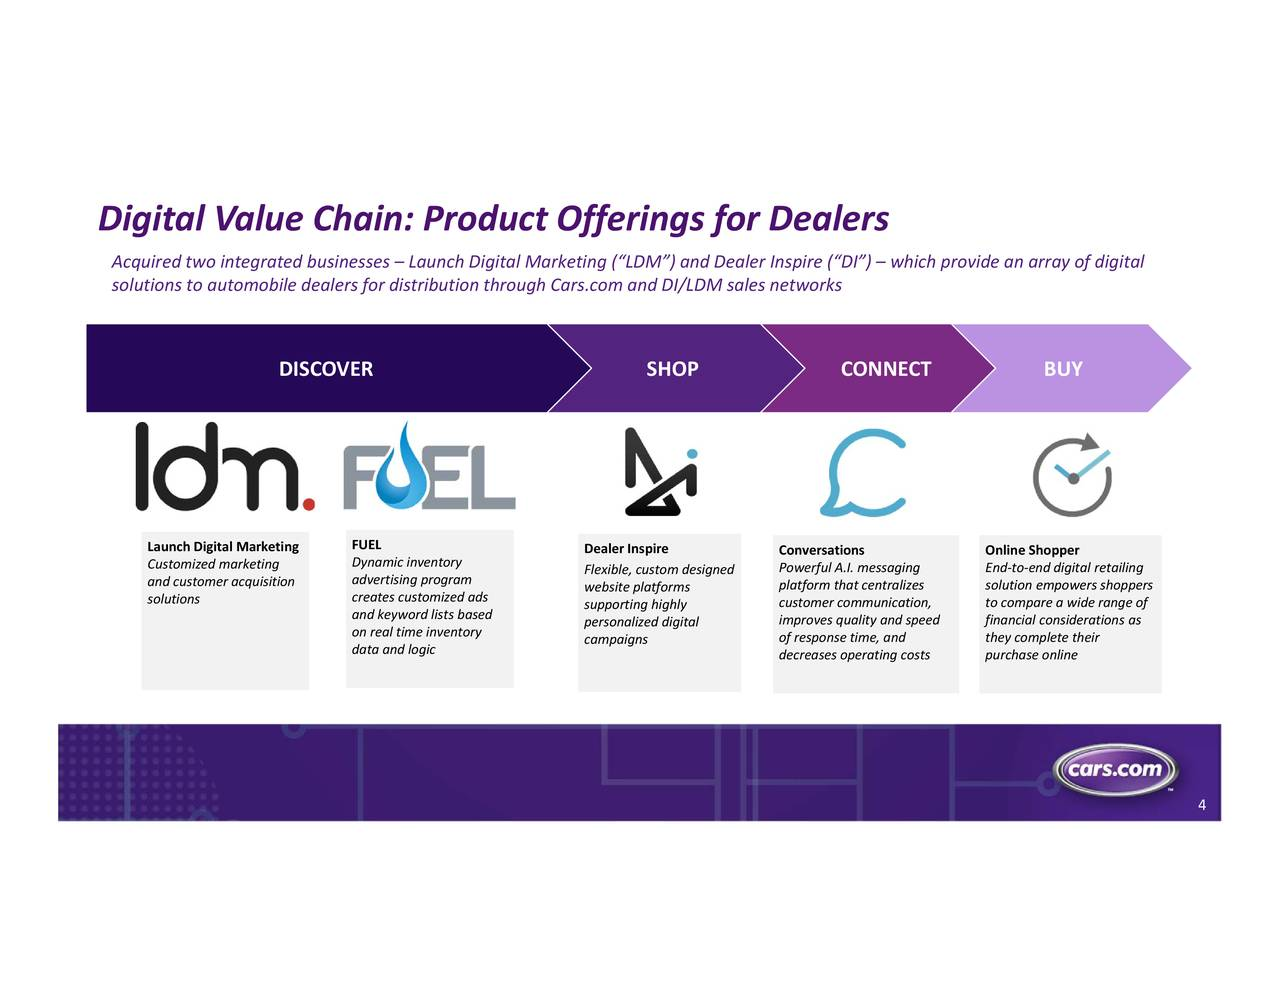 Dealers Cars Com >> Cars Com Cars To Acquire Dealer Inspire And Launch Digital